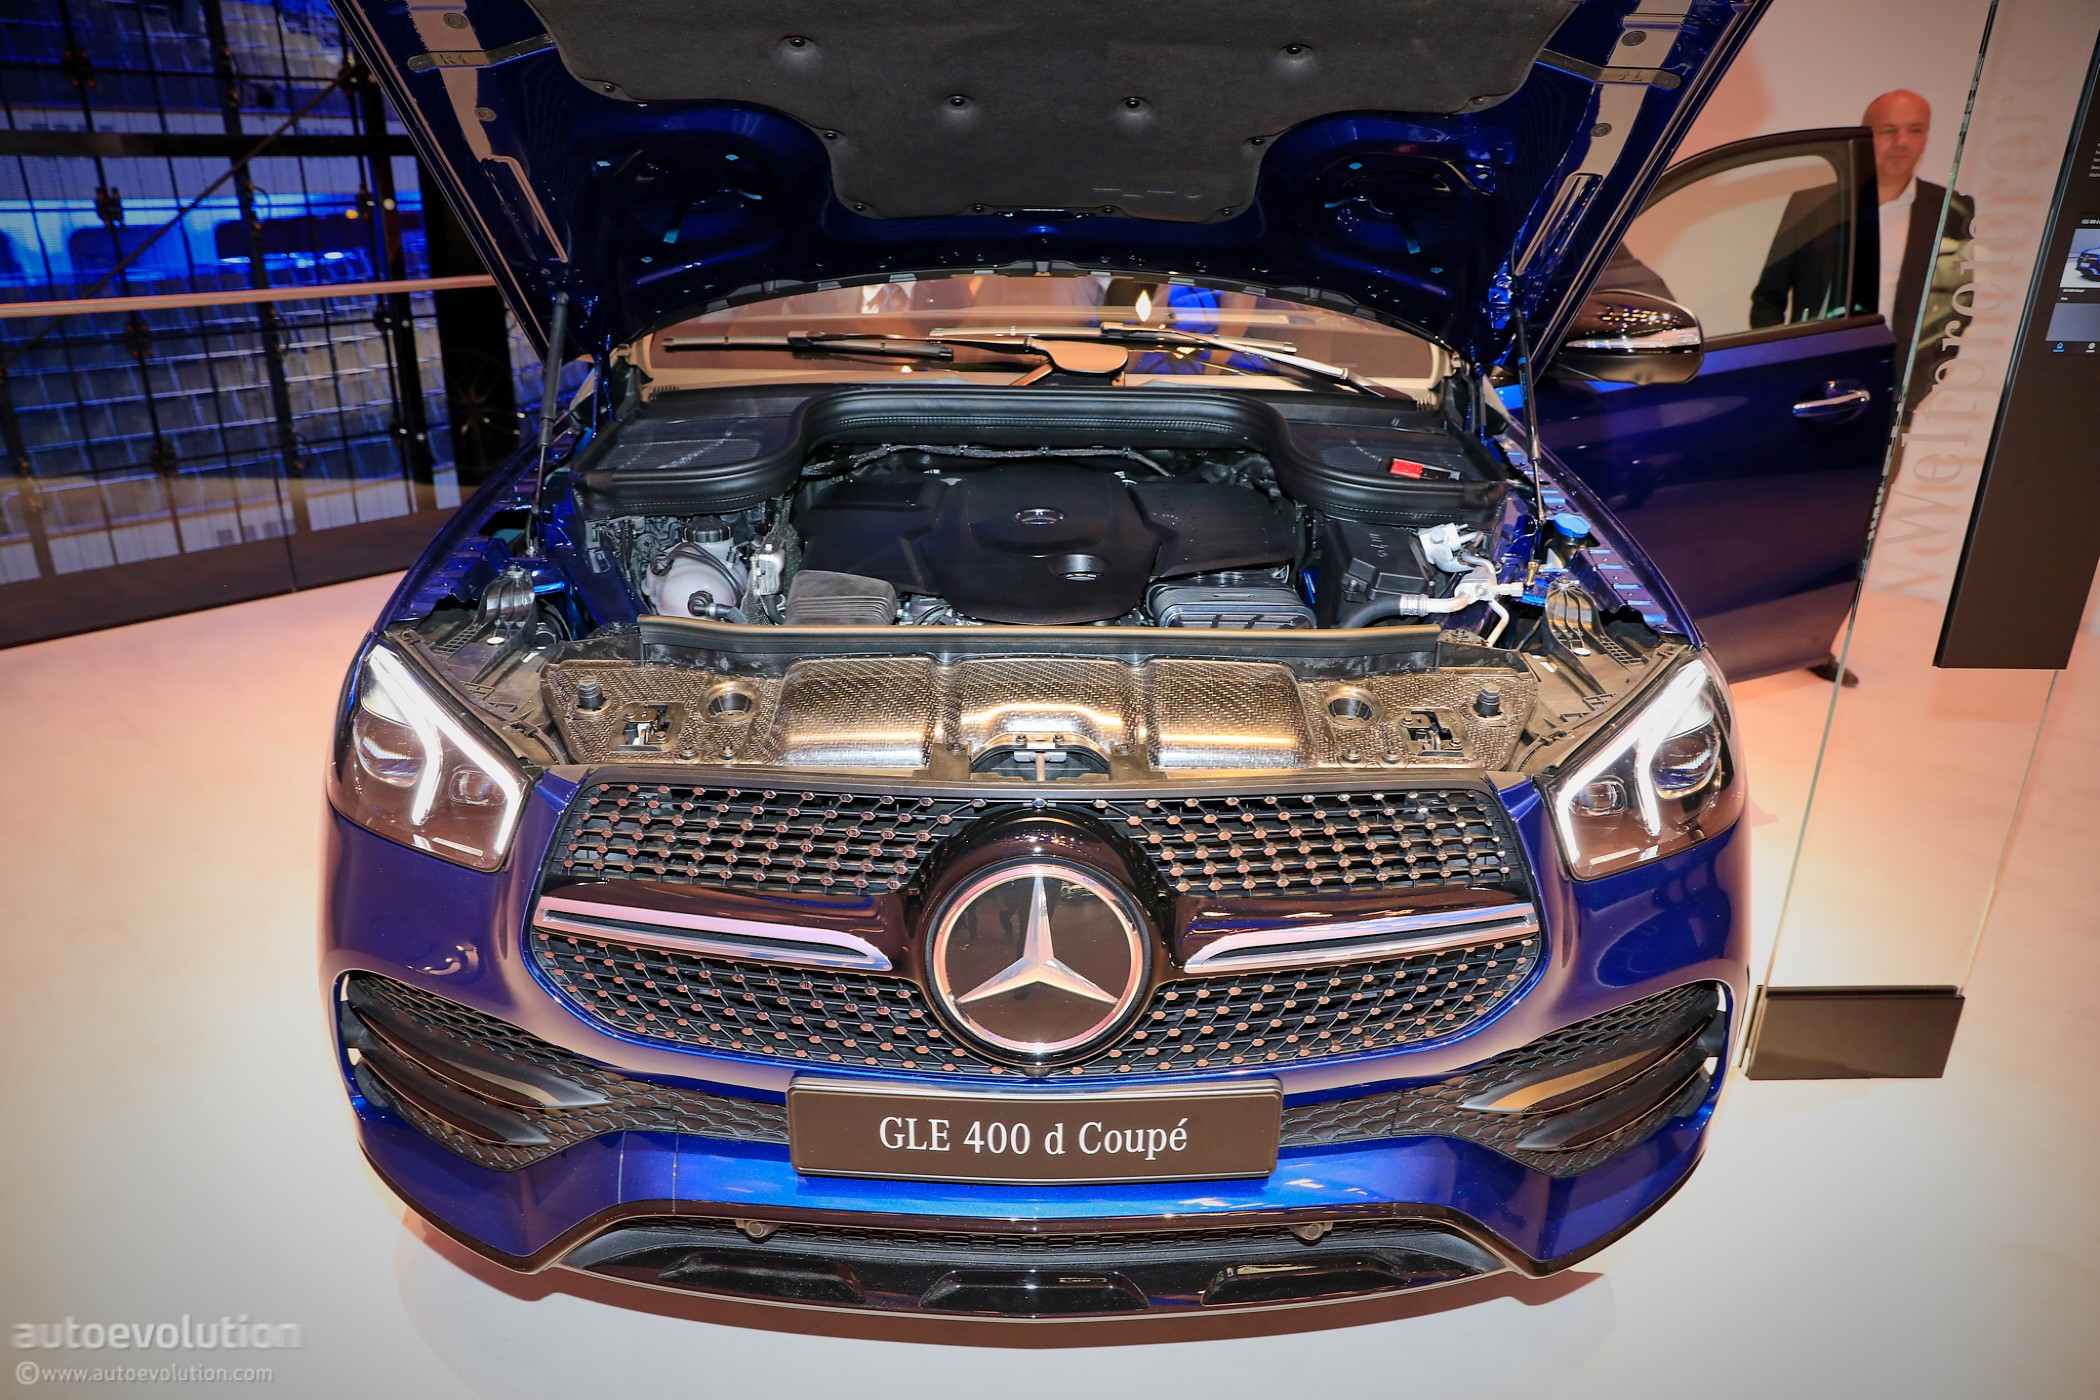 Frankfurt Auto Show 2020.2020 Mercedes Benz Gle Coupe Flaunts 400 D Specification In